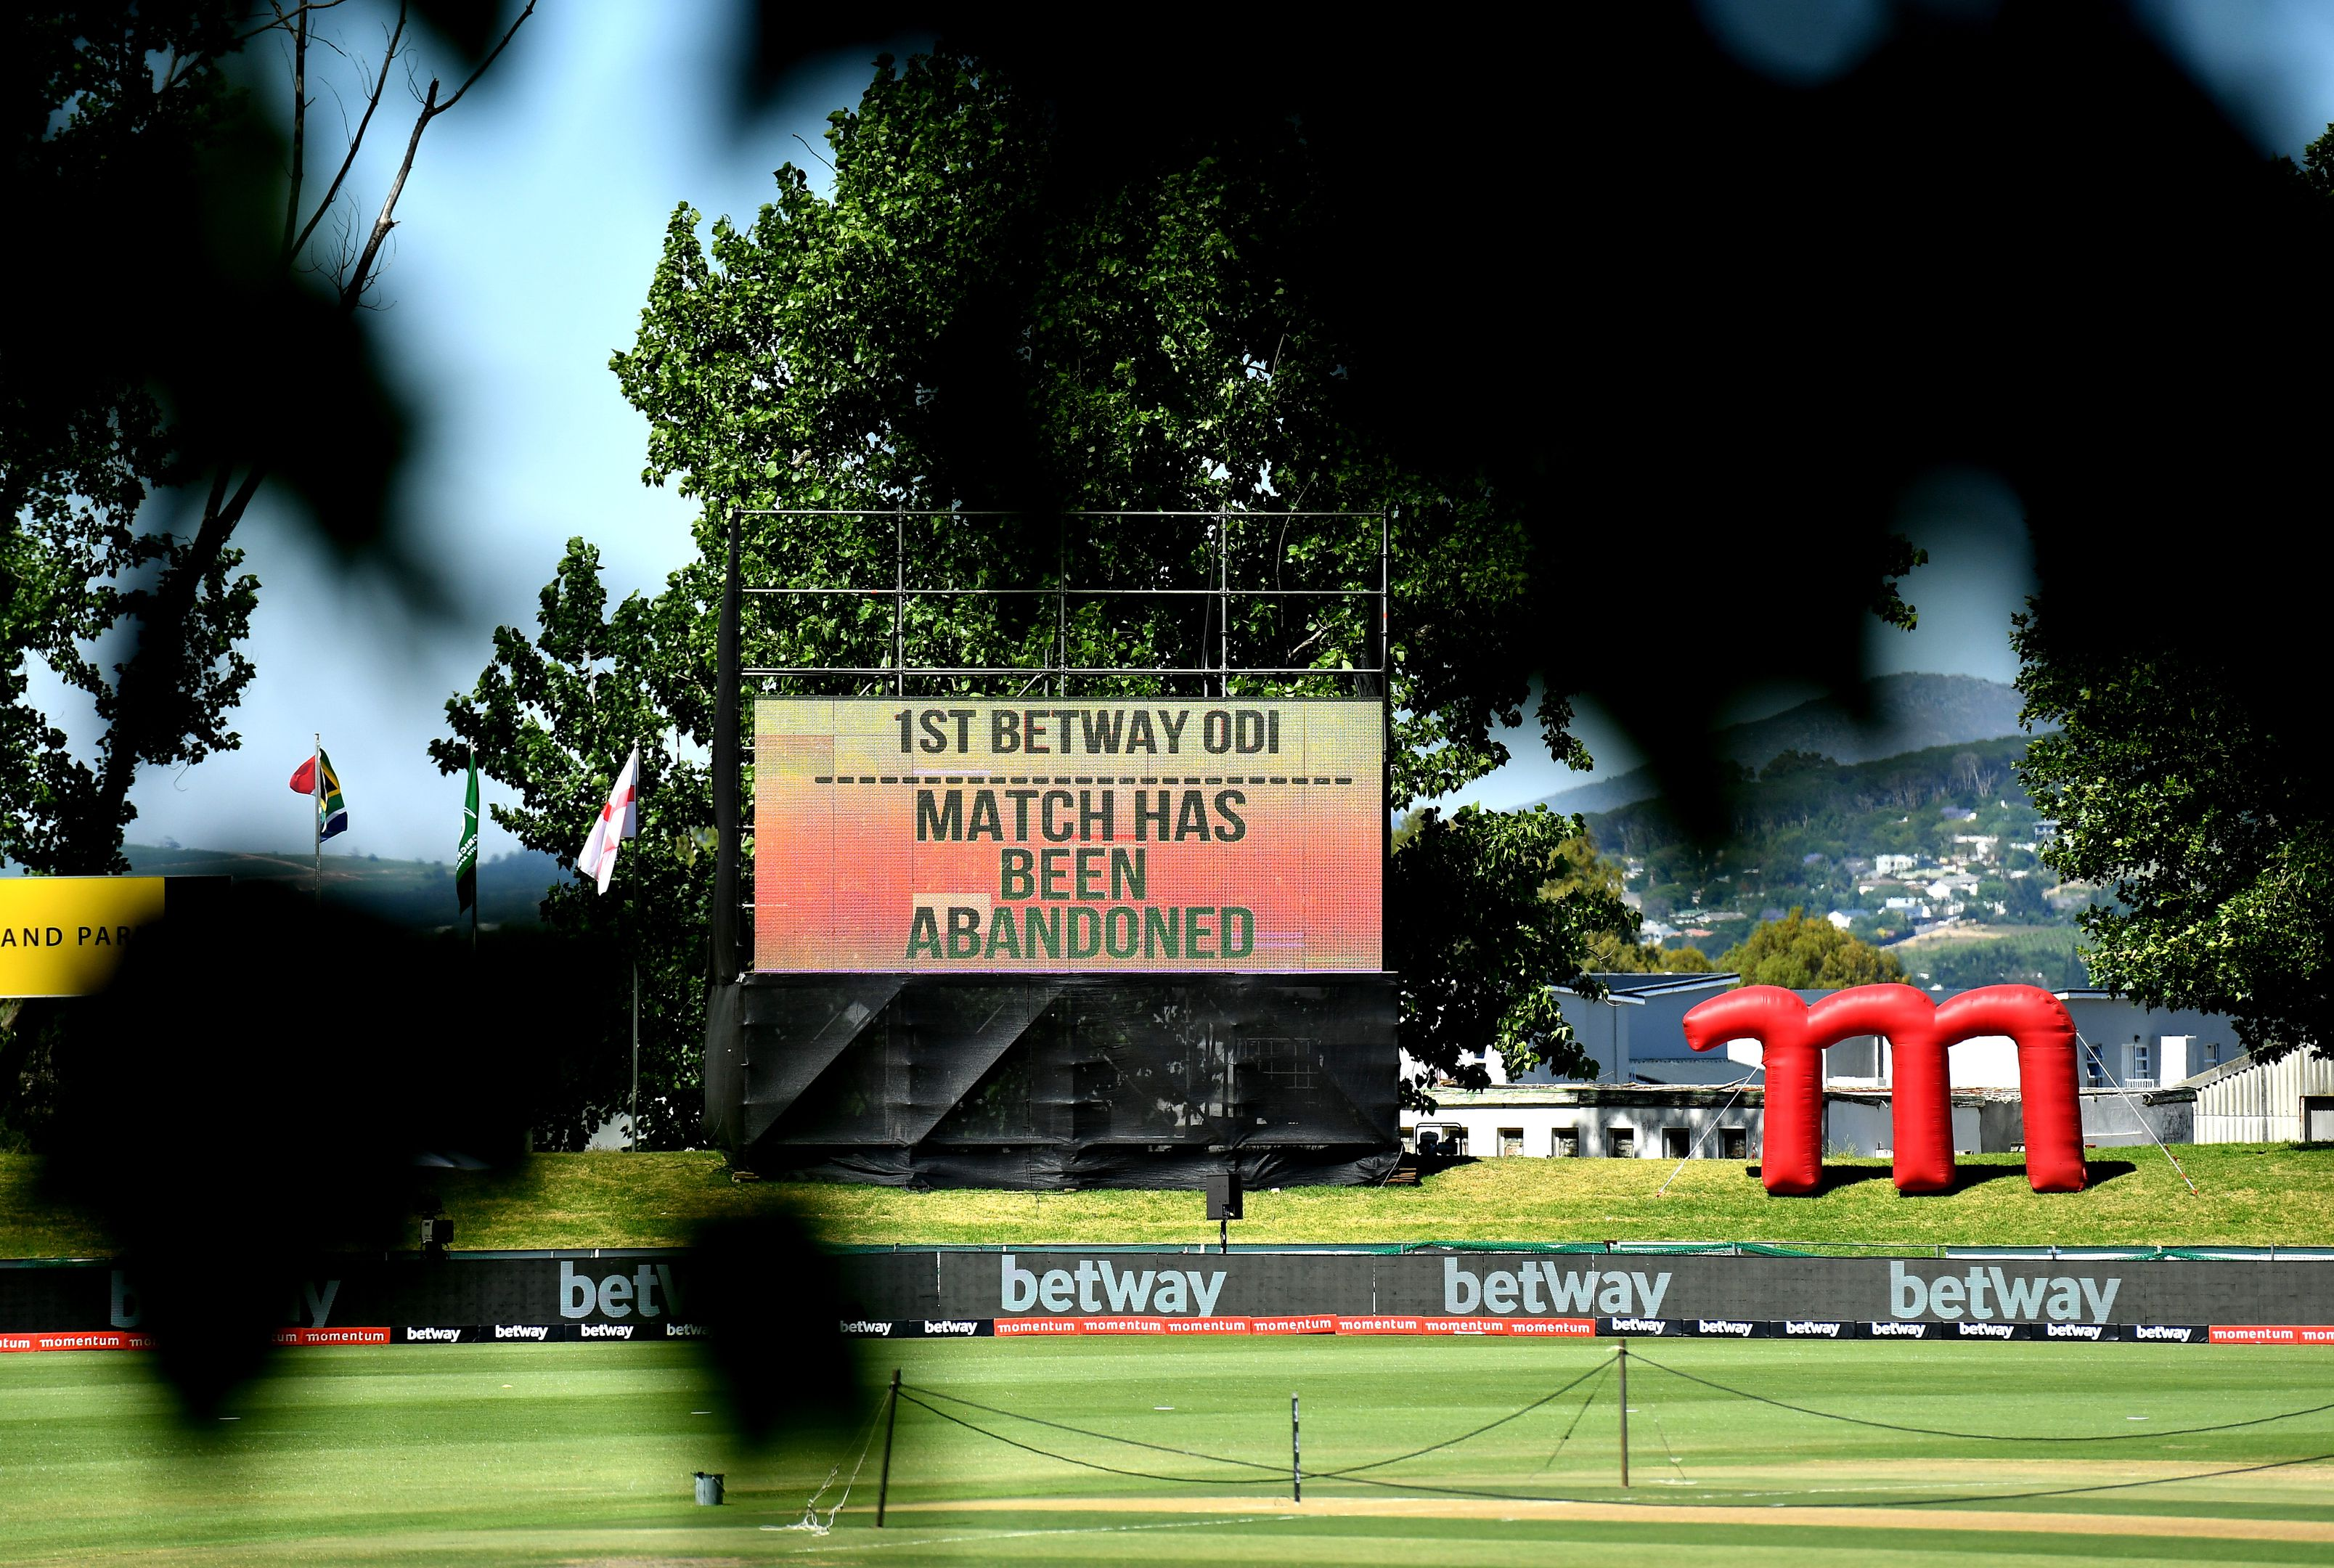 The South Africa v England ODI has been abandoned.